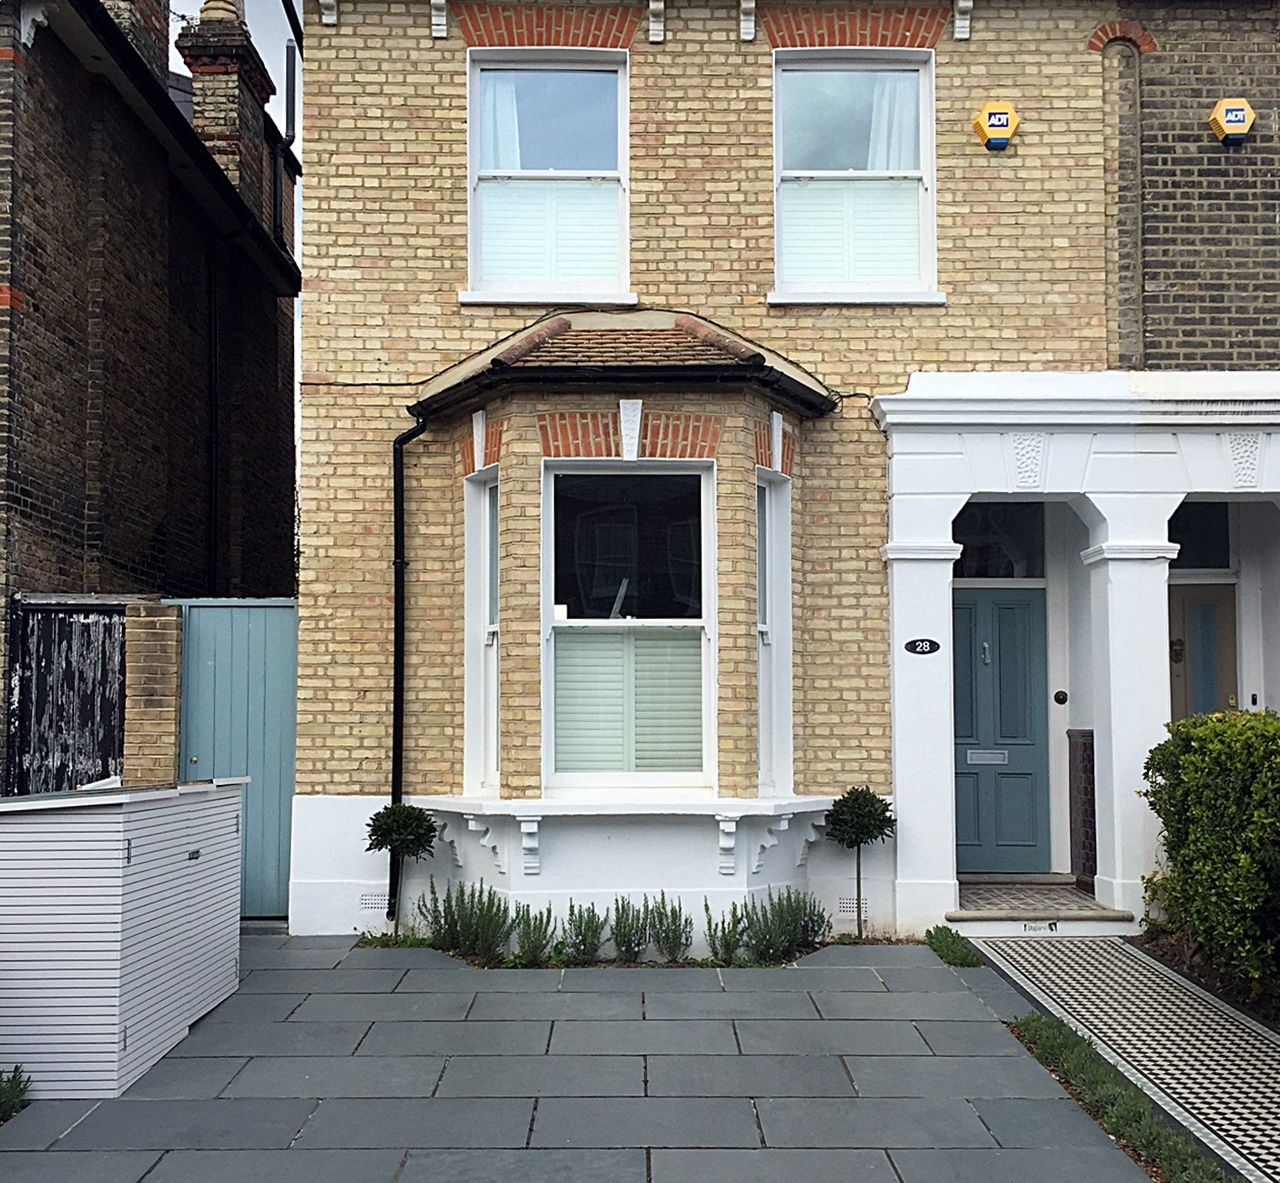 image result for london front garden ideas